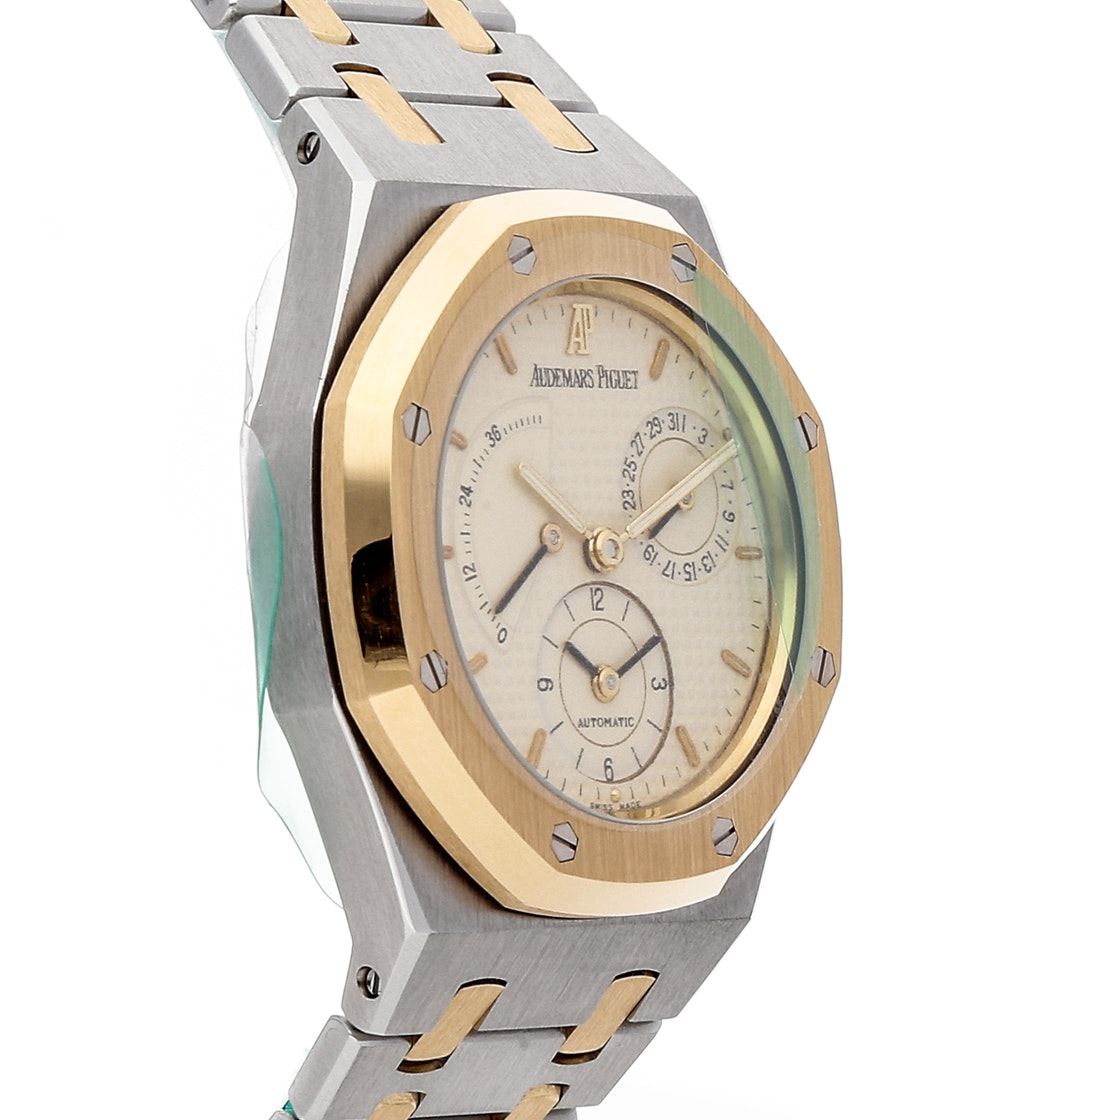 Audemars Piguet Royal Oak Dual Time Power Reserve 25730SA.OO.0789SA.02